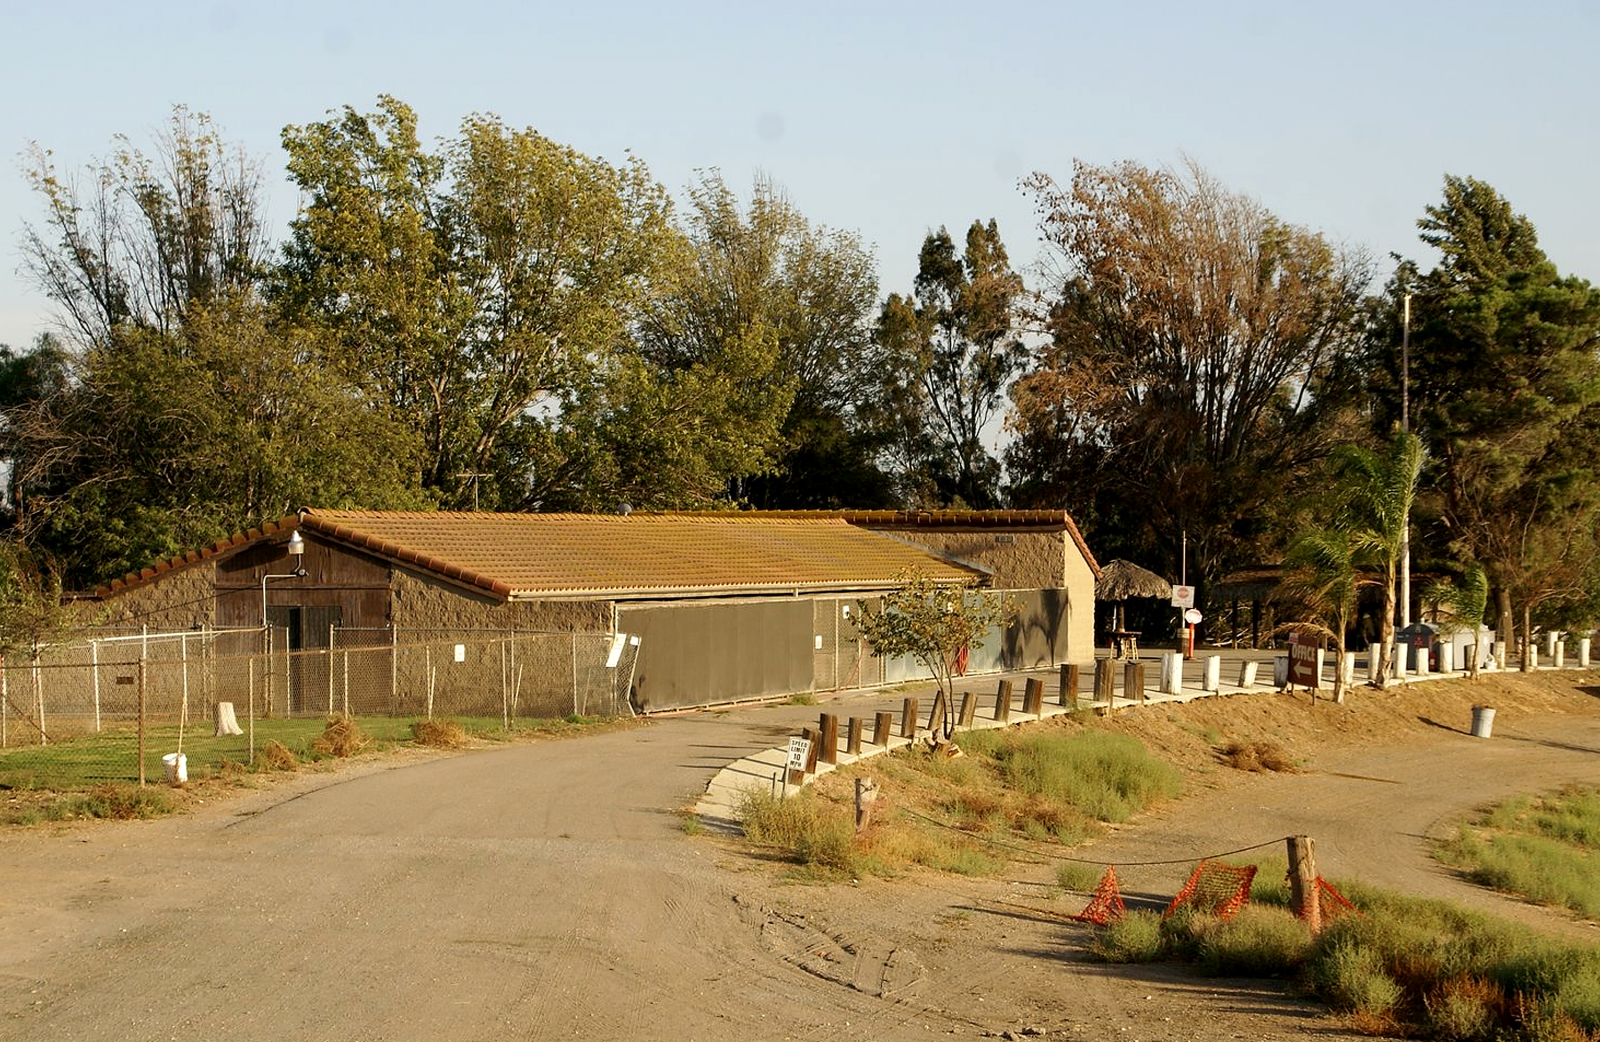 The Prado dog park facility office building.